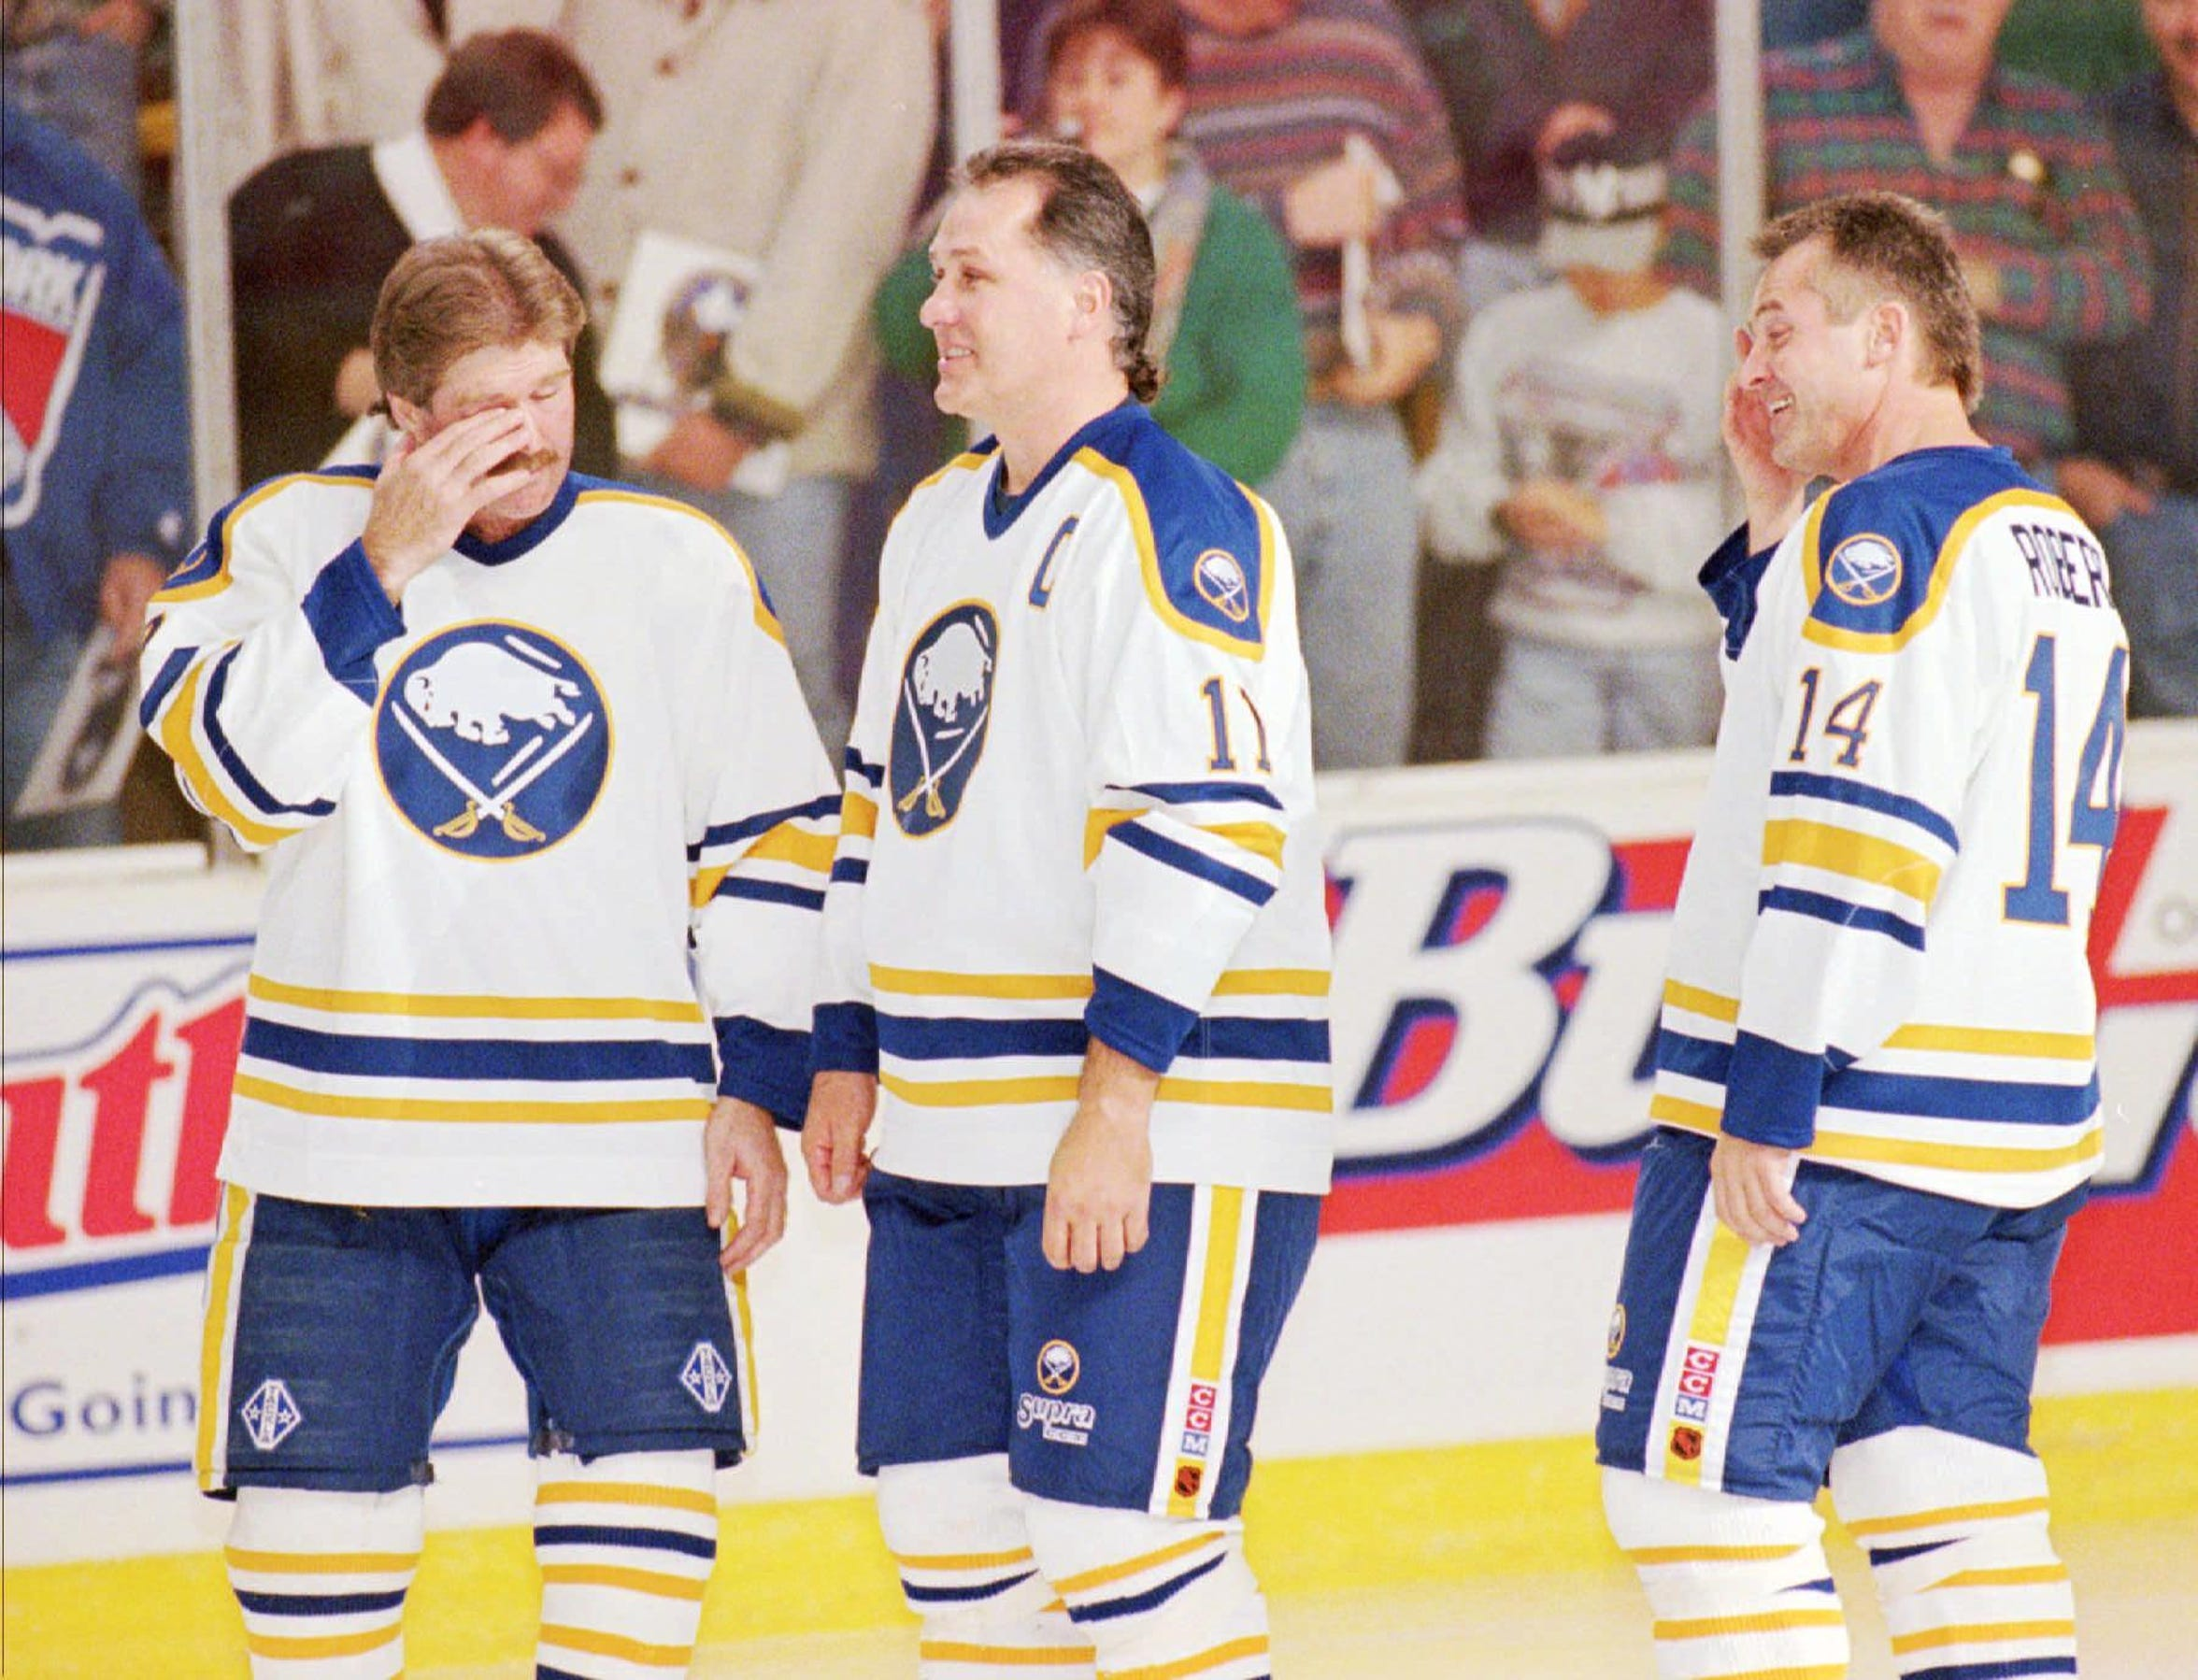 """Retired Buffalo Sabres linemates Richard Martin, left, Gilbert Perreault, center, and Rene Robert, known in the 1970s as the """"French Connection,"""" become emotional as their jerseys are raised together Wednesday, Nov. 15, 1995, at the Memorial Auditorium in Buffalo, N.Y. Martin and Robert joined previously inducted Perreault in the Sabres Hall of Fame before the Sabres game against the Dallas Stars. Former Rochester Americans coach Joe Crozier helped to put the French Connection together in the early 1970s."""